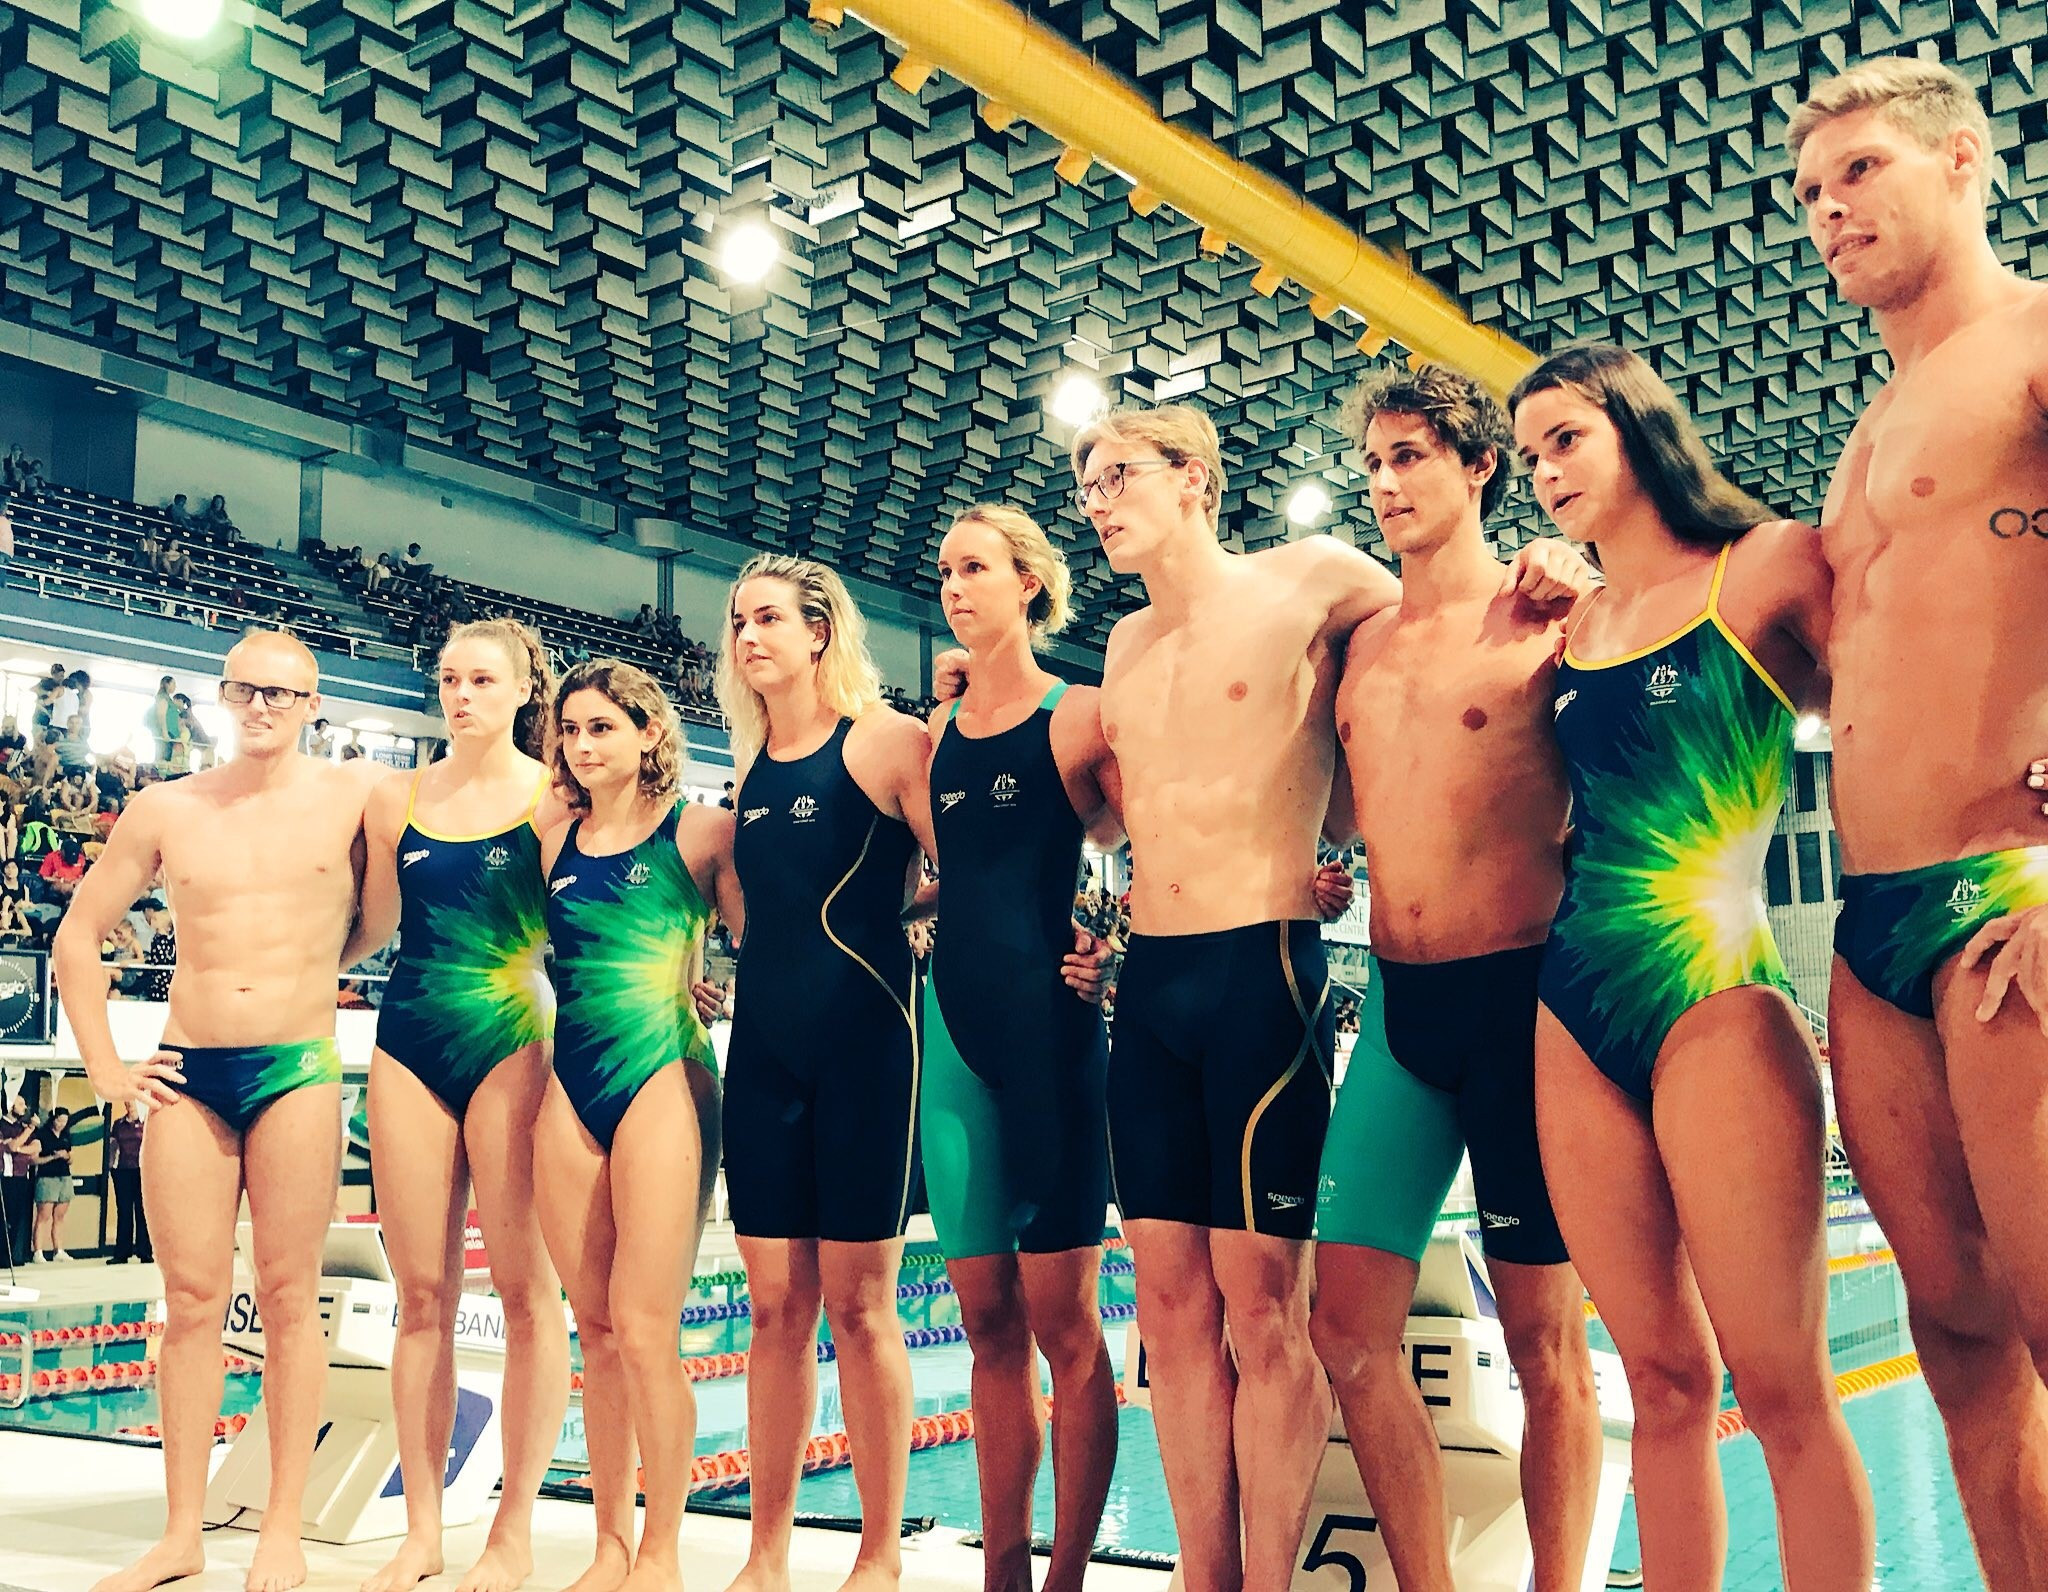 Australia's Speedo swimwear for next year's Commonwealth Games in Gold Coast has been unveiled ©Commonwealth Games Australia